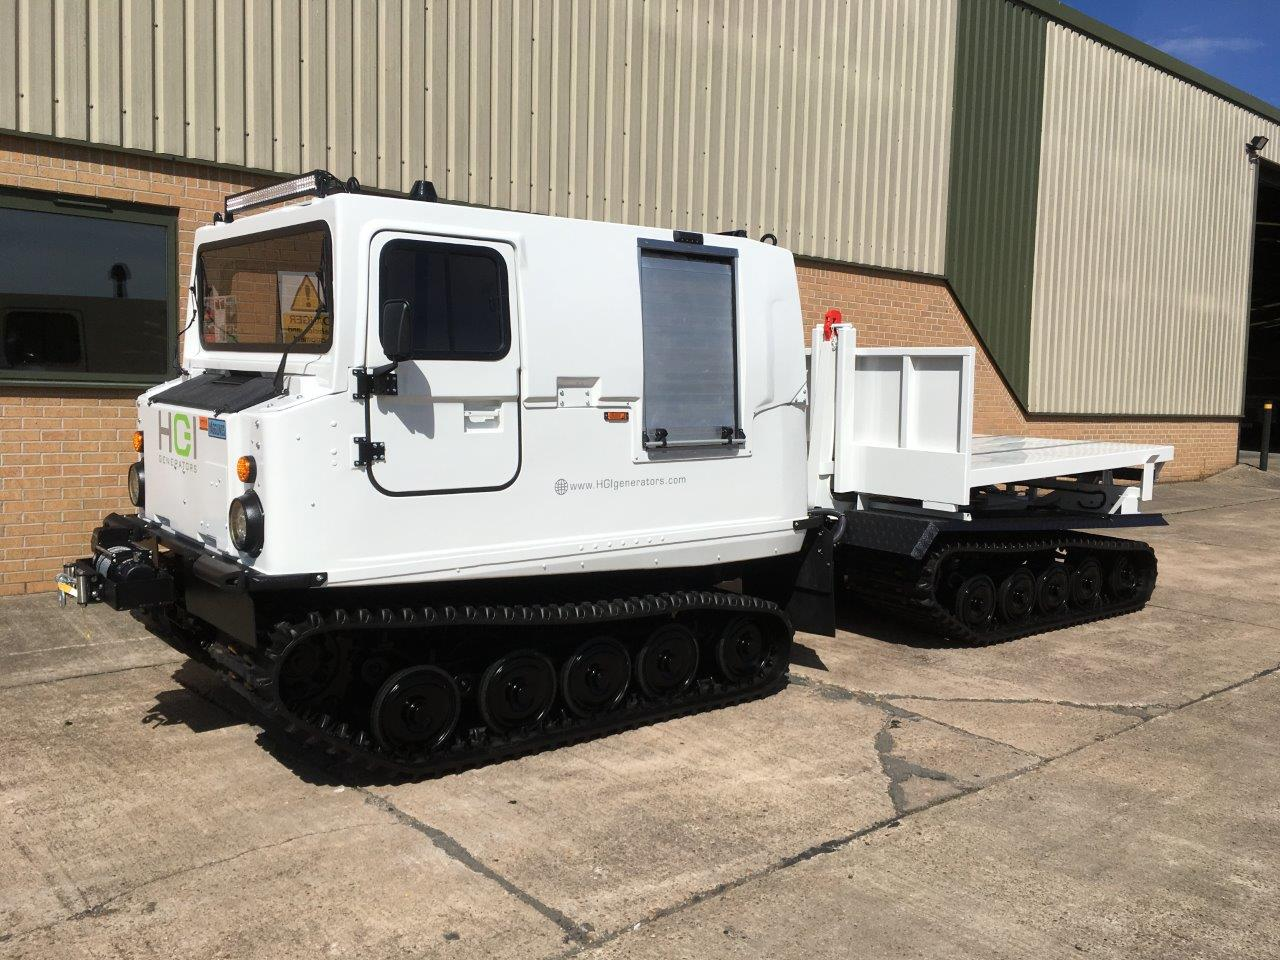 Hagglund Bv206 DROPS Body Unit for sale | military vehicles